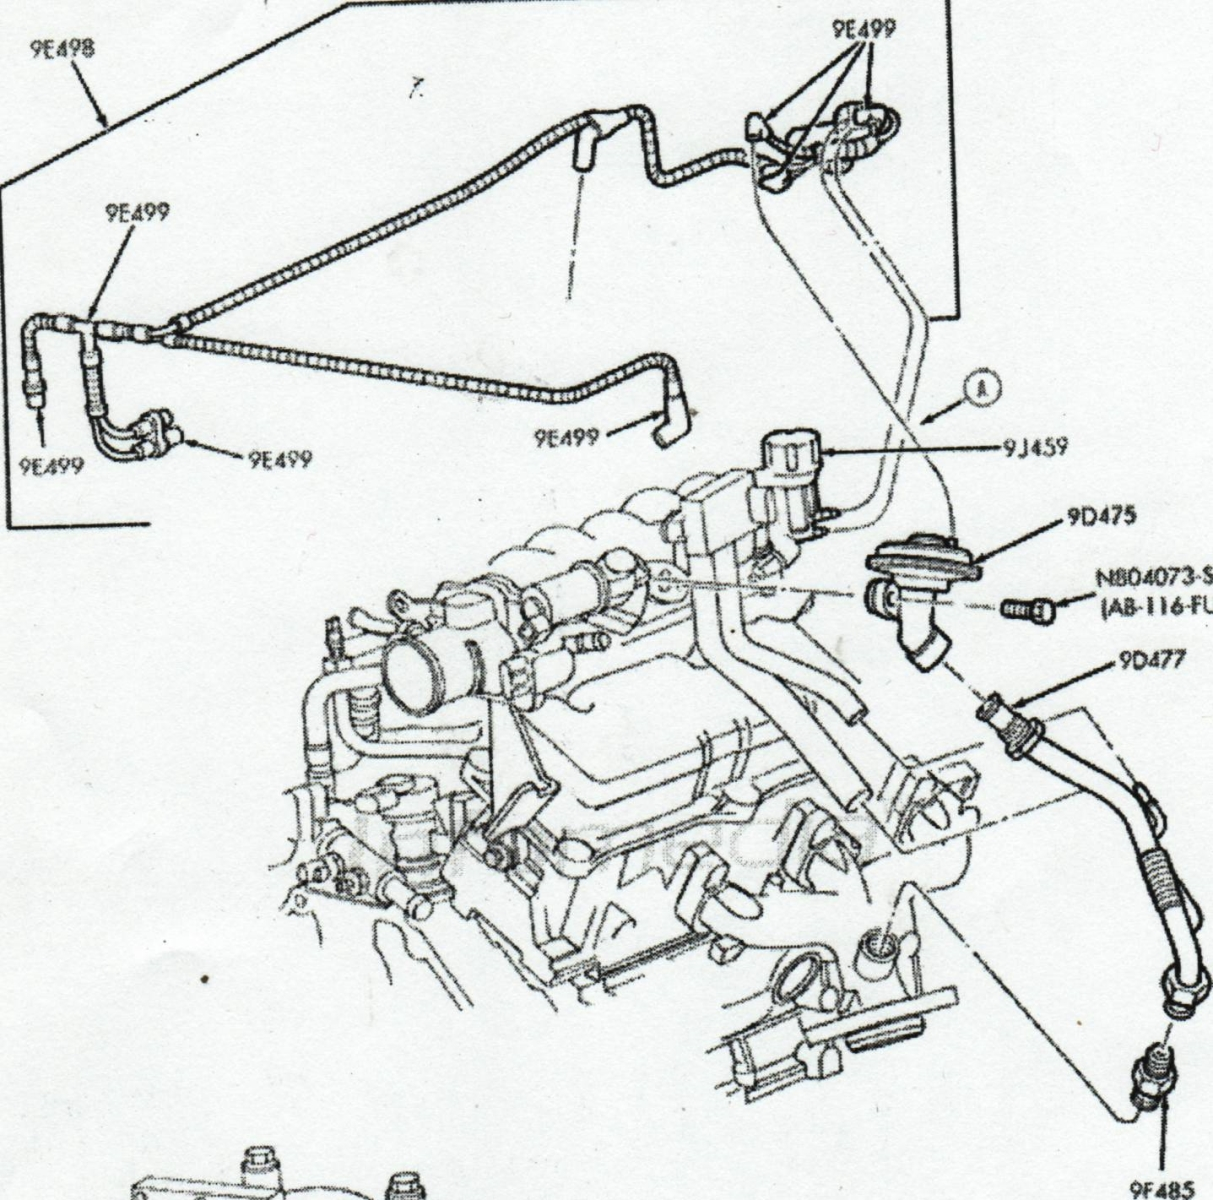 2006 ford taurus fuel system diagram